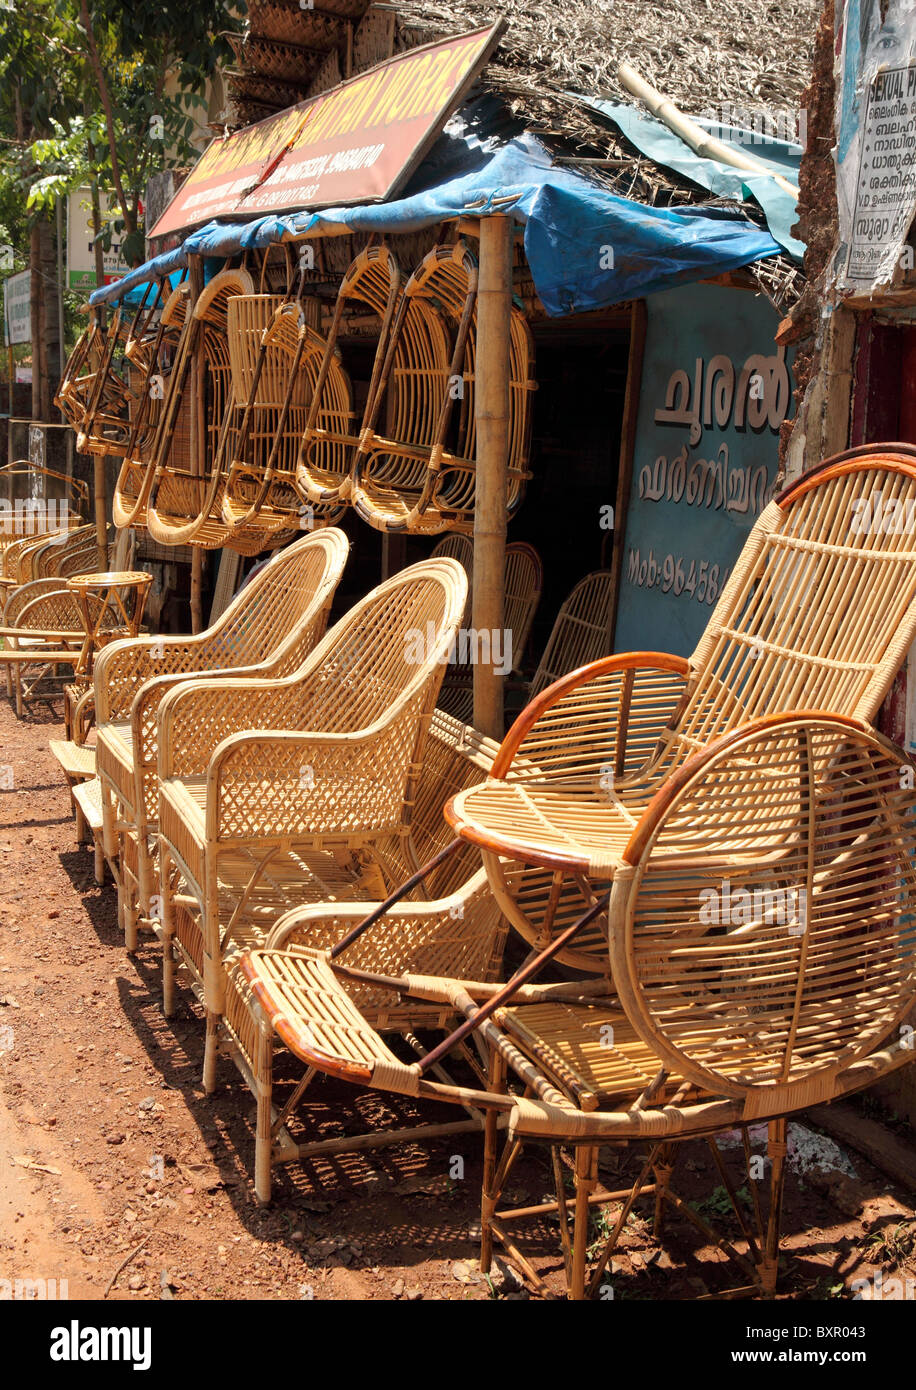 A shop manufacturing traditional indian wicker furniture displays its goods outside its premises in Varkala, Kerala, - Stock Image